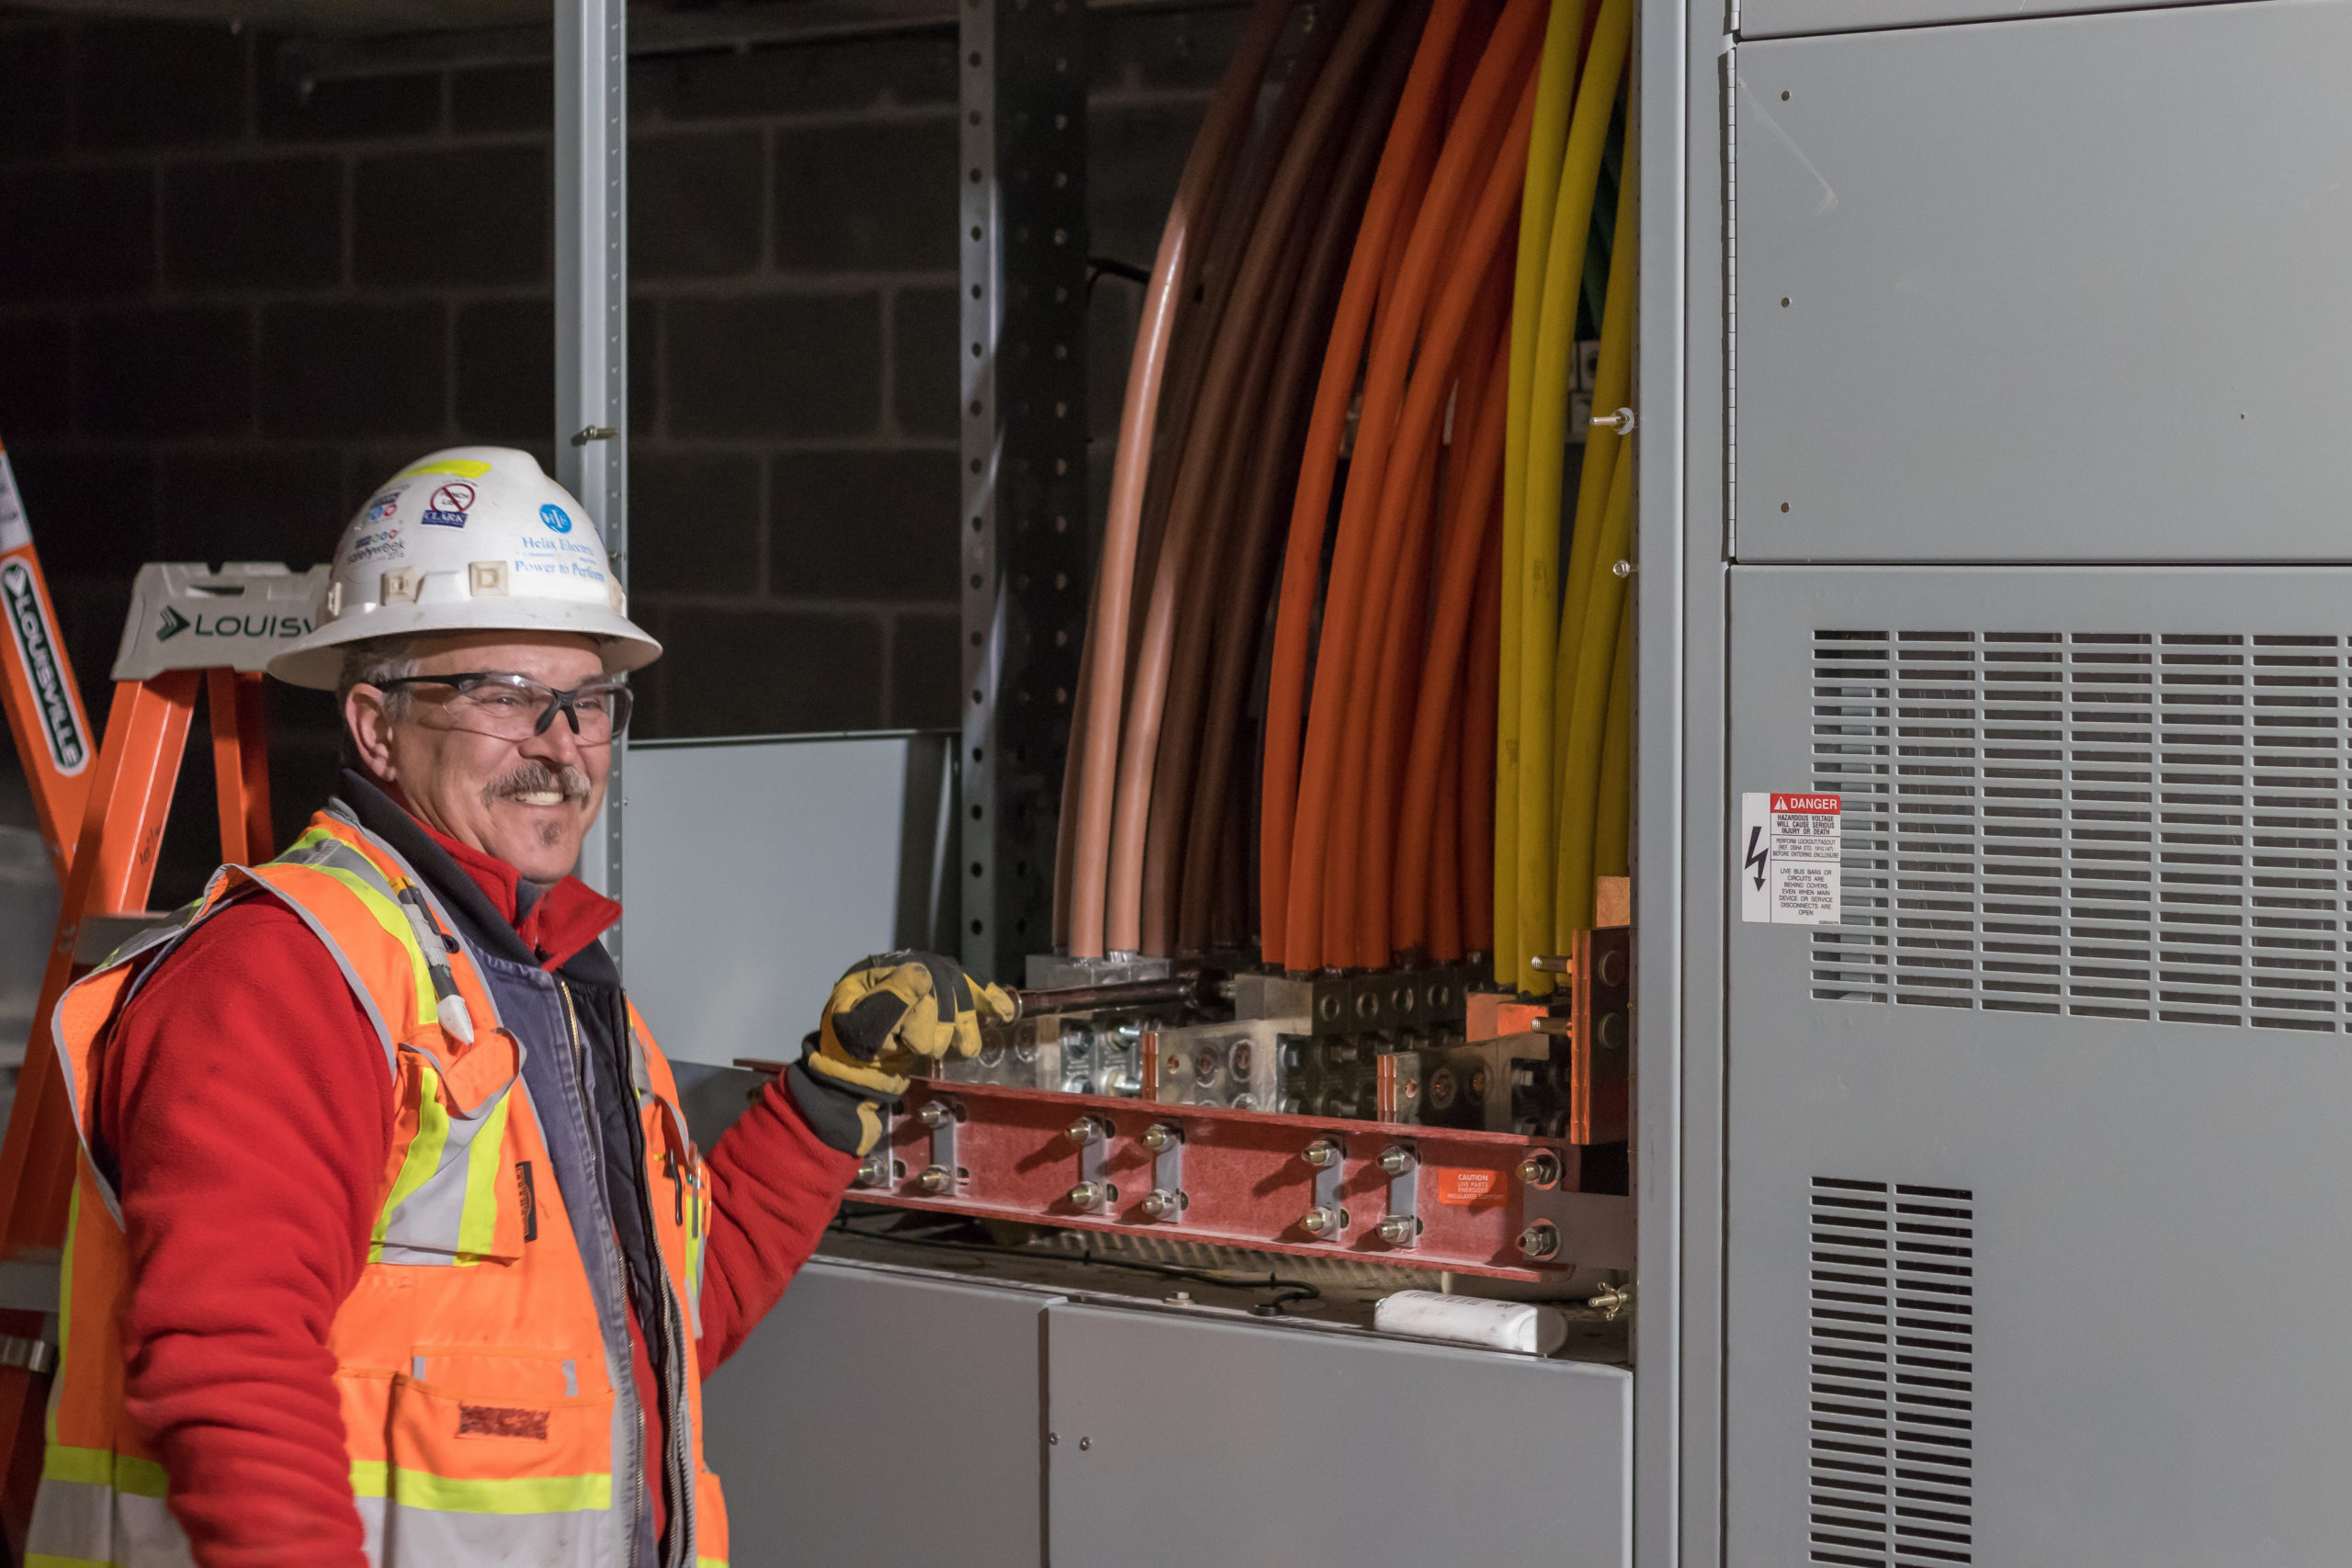 A Helix Electric employee smiles while working